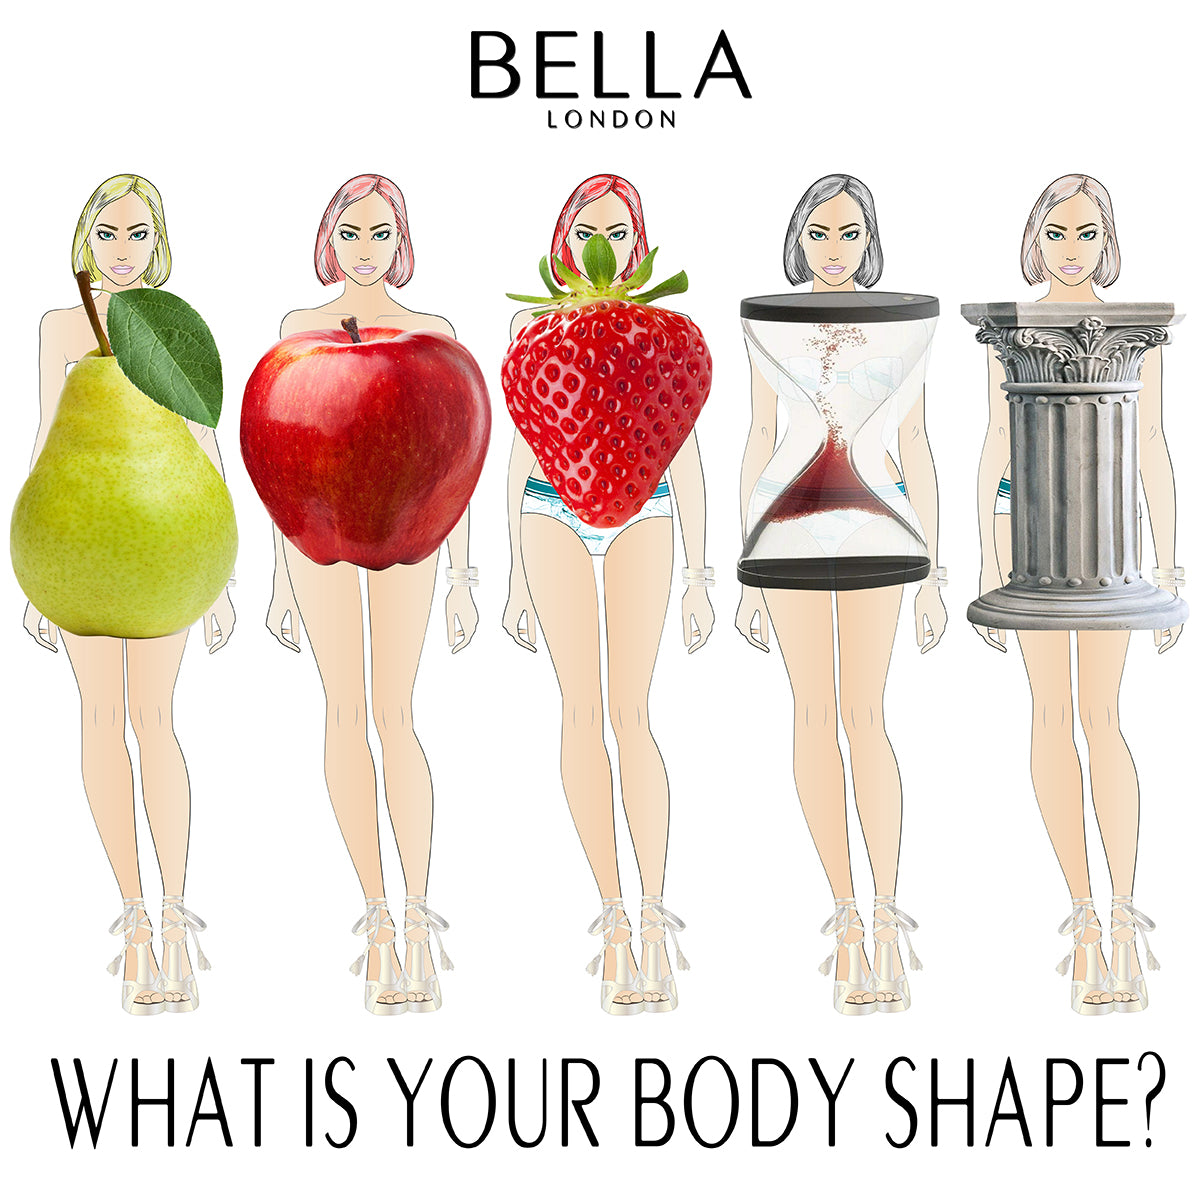 Bella London What Is Your Body Shape? Pear Apple Strawberry Hourglass Column